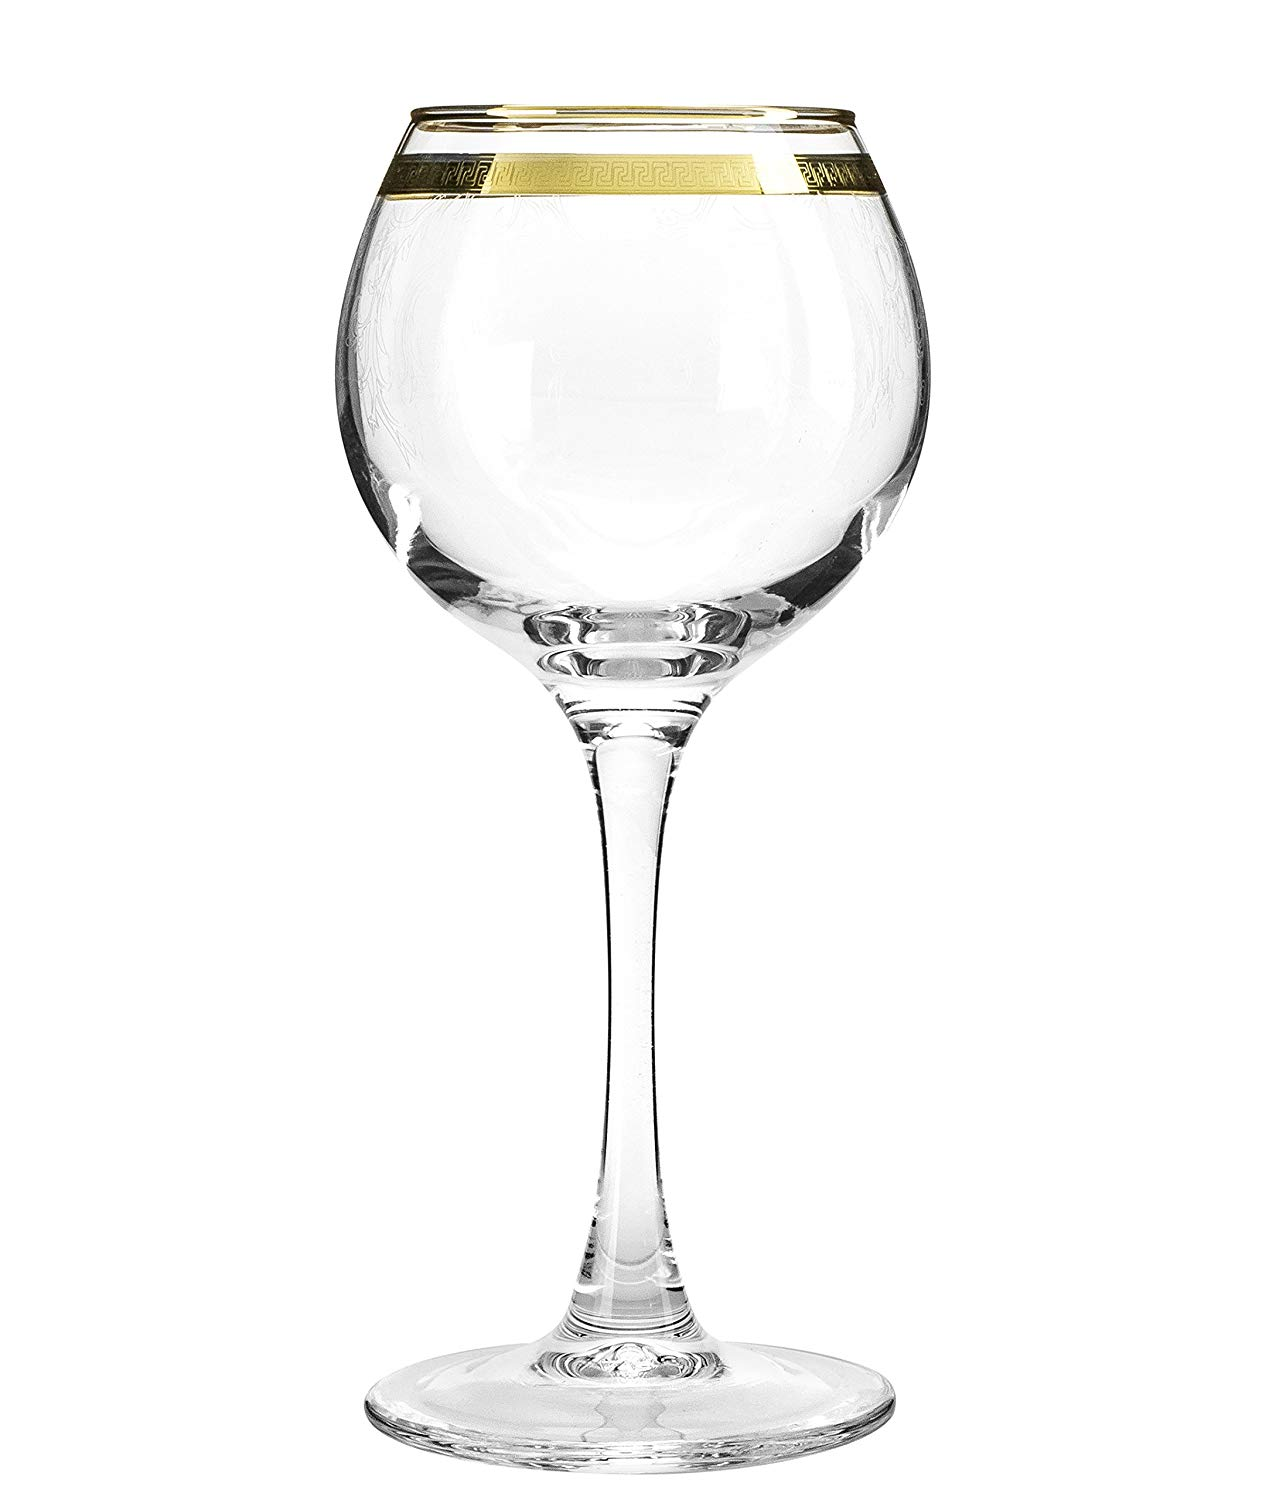 Crystal Goose TL40-1689, 7.1 Oz. Wine Glasses with Gold Sputtering, Clear Red/White Wine Glasses on a Long Stem, Wedding Drinkware, Gift Box Set of 6